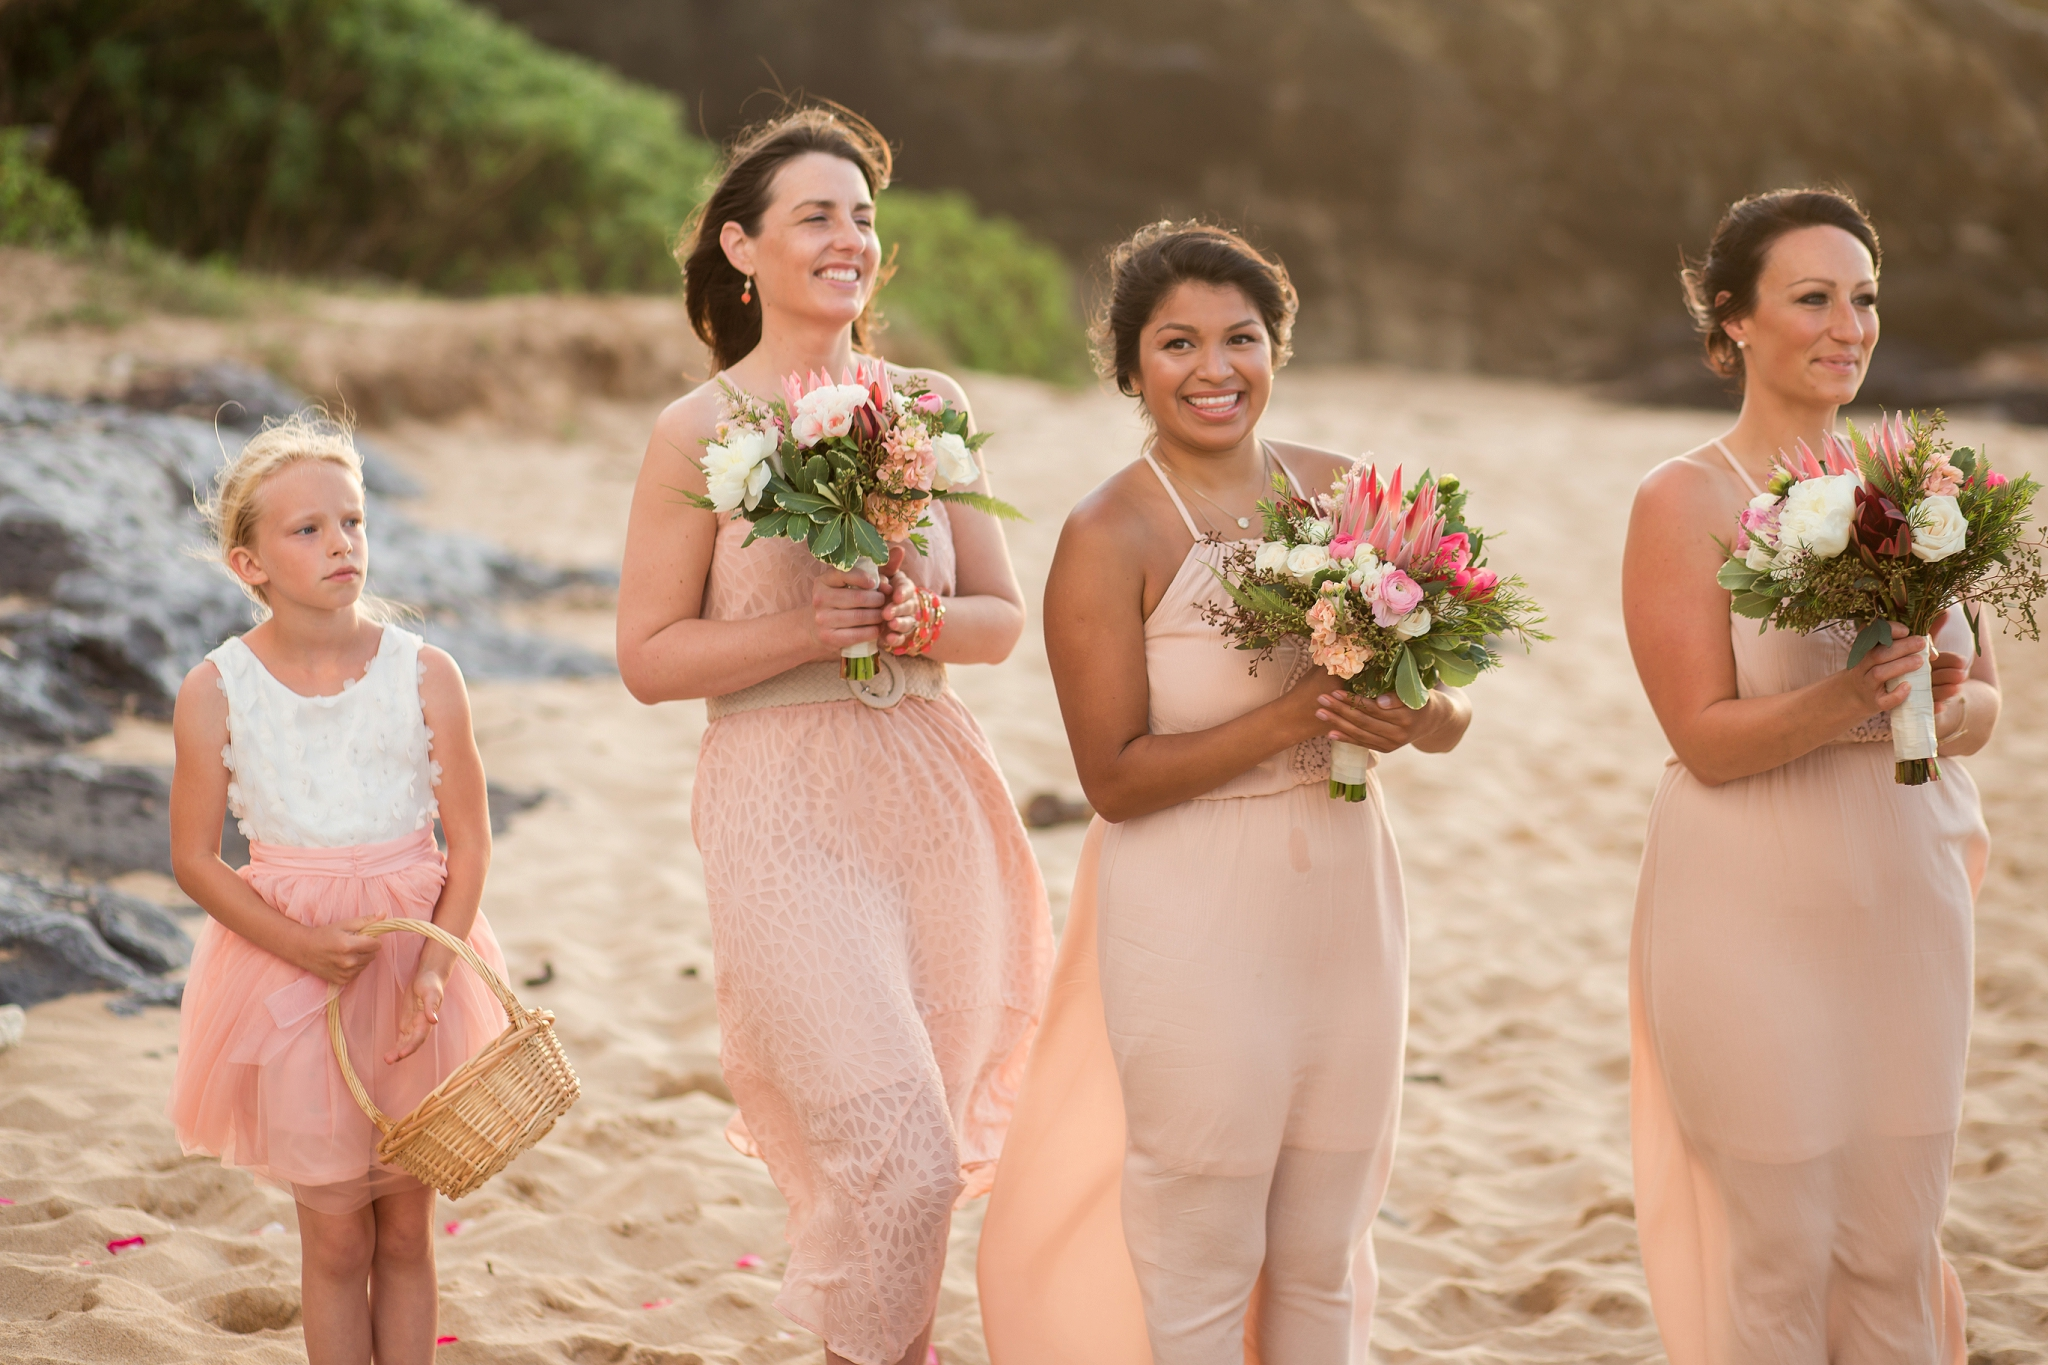 Bridesmaid_hawaii_wedding_photographer.jpg